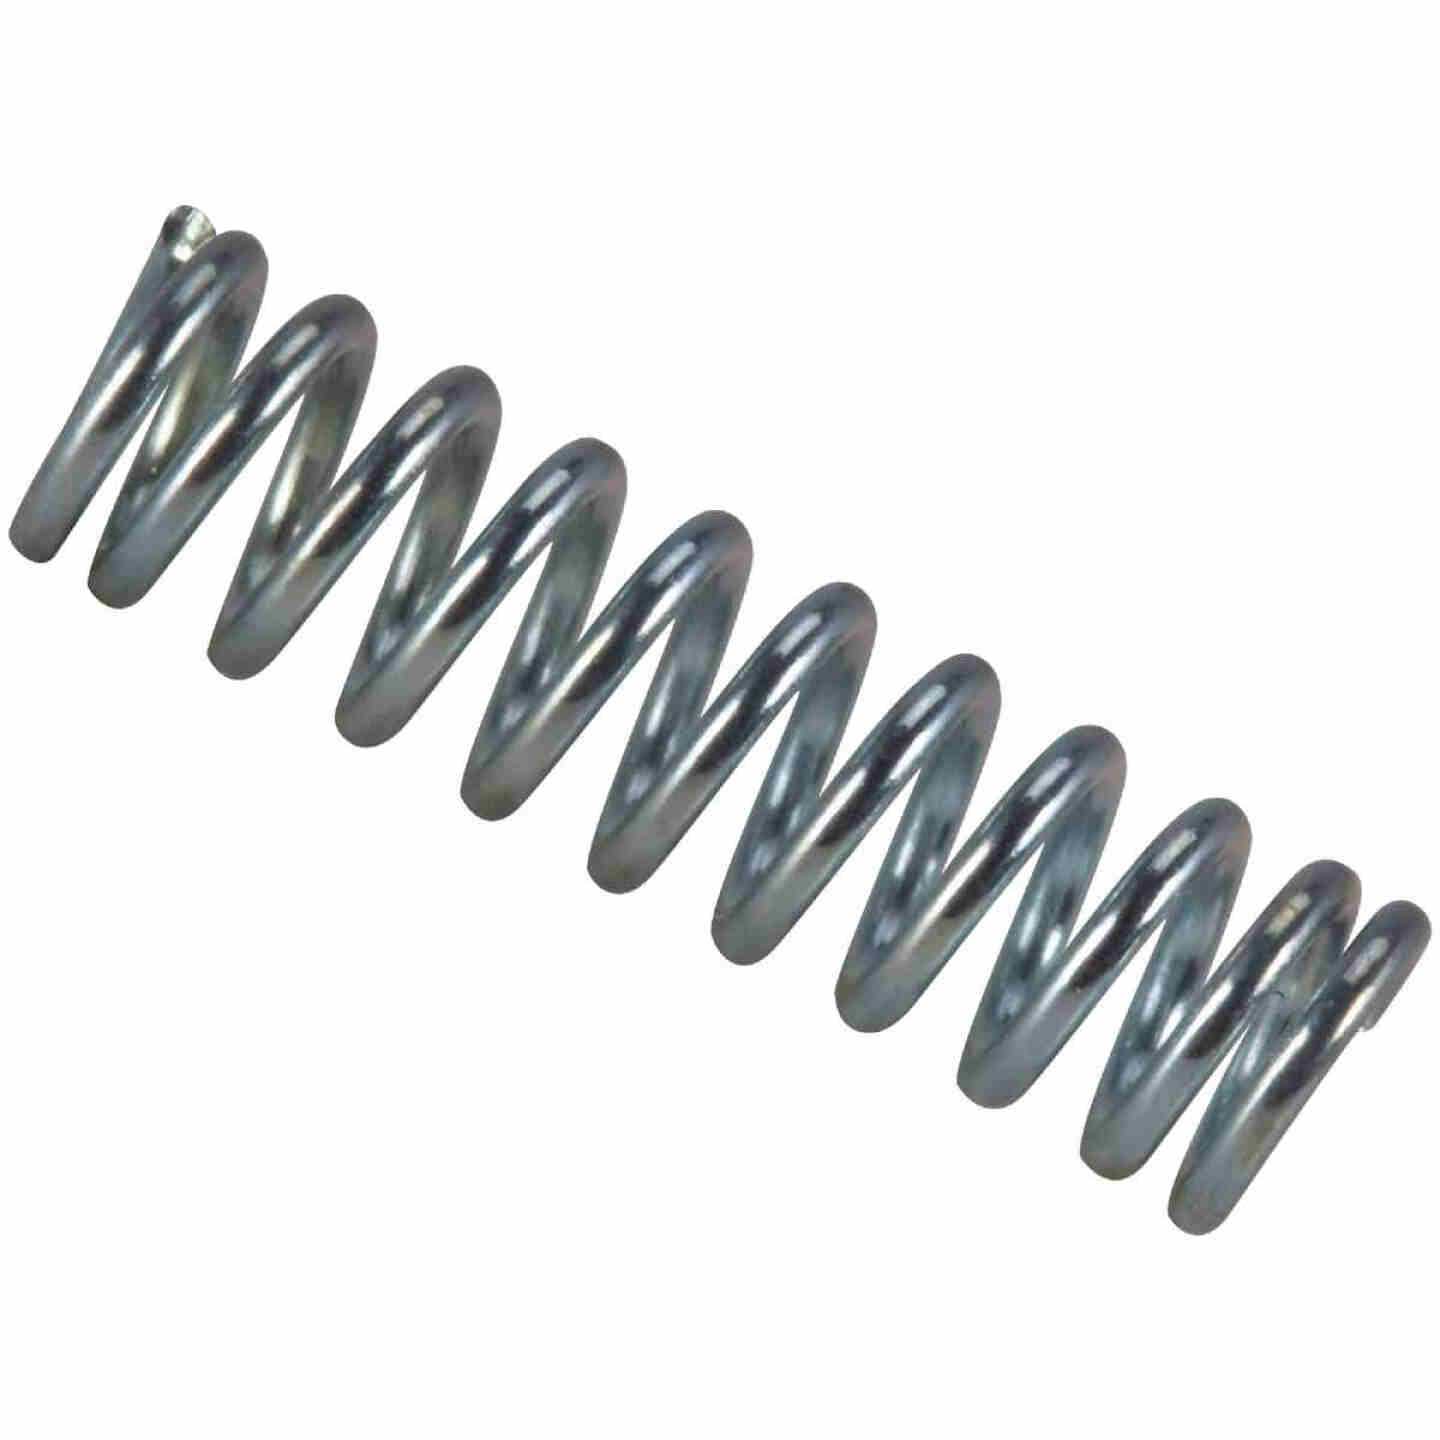 Century Spring 9/16 In. x 5/32 In. Compression Spring (6 Count) Image 1